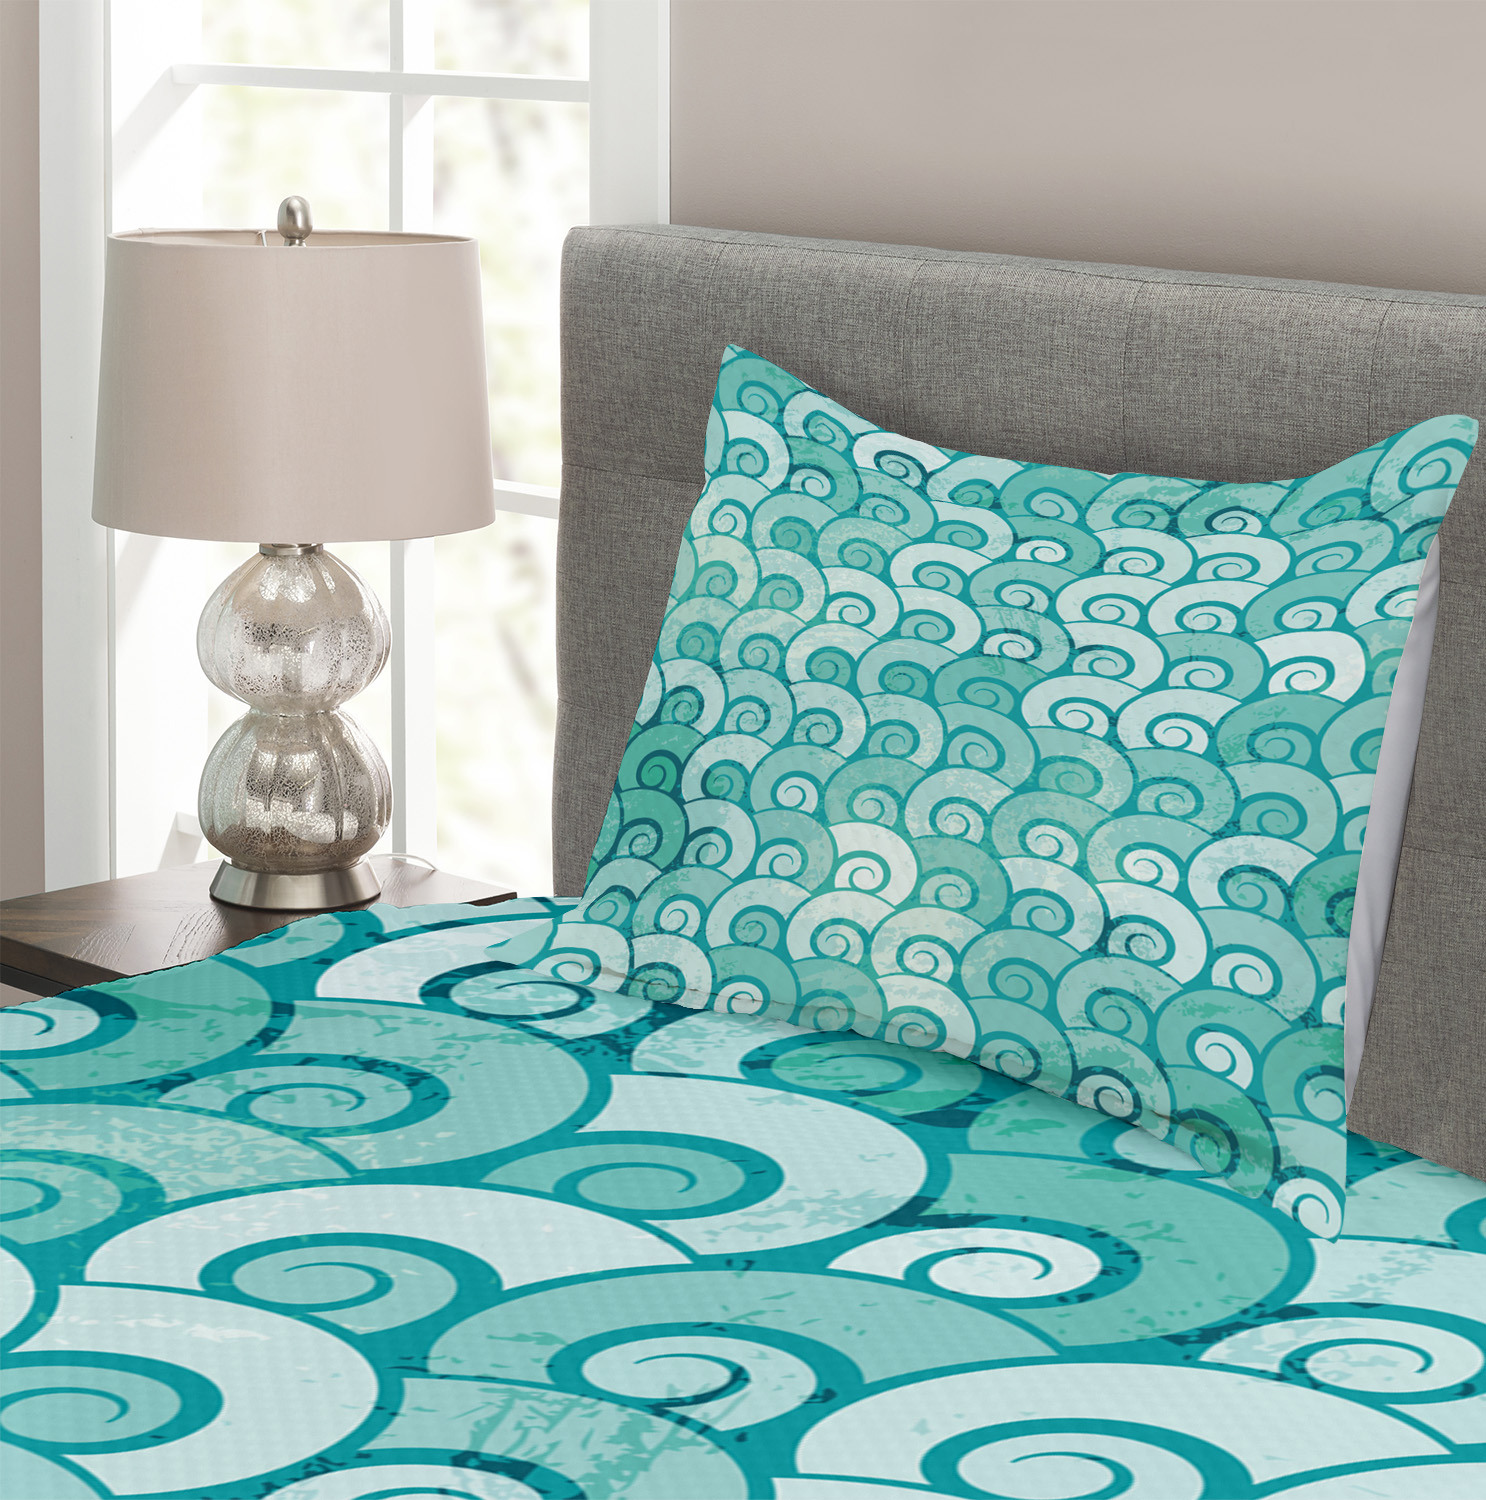 Swirled Spiral Sea Waves Print Ocean Quilted Bedspread Pillow Shams Set Quilts Bedspreads Coverlets Home Garden